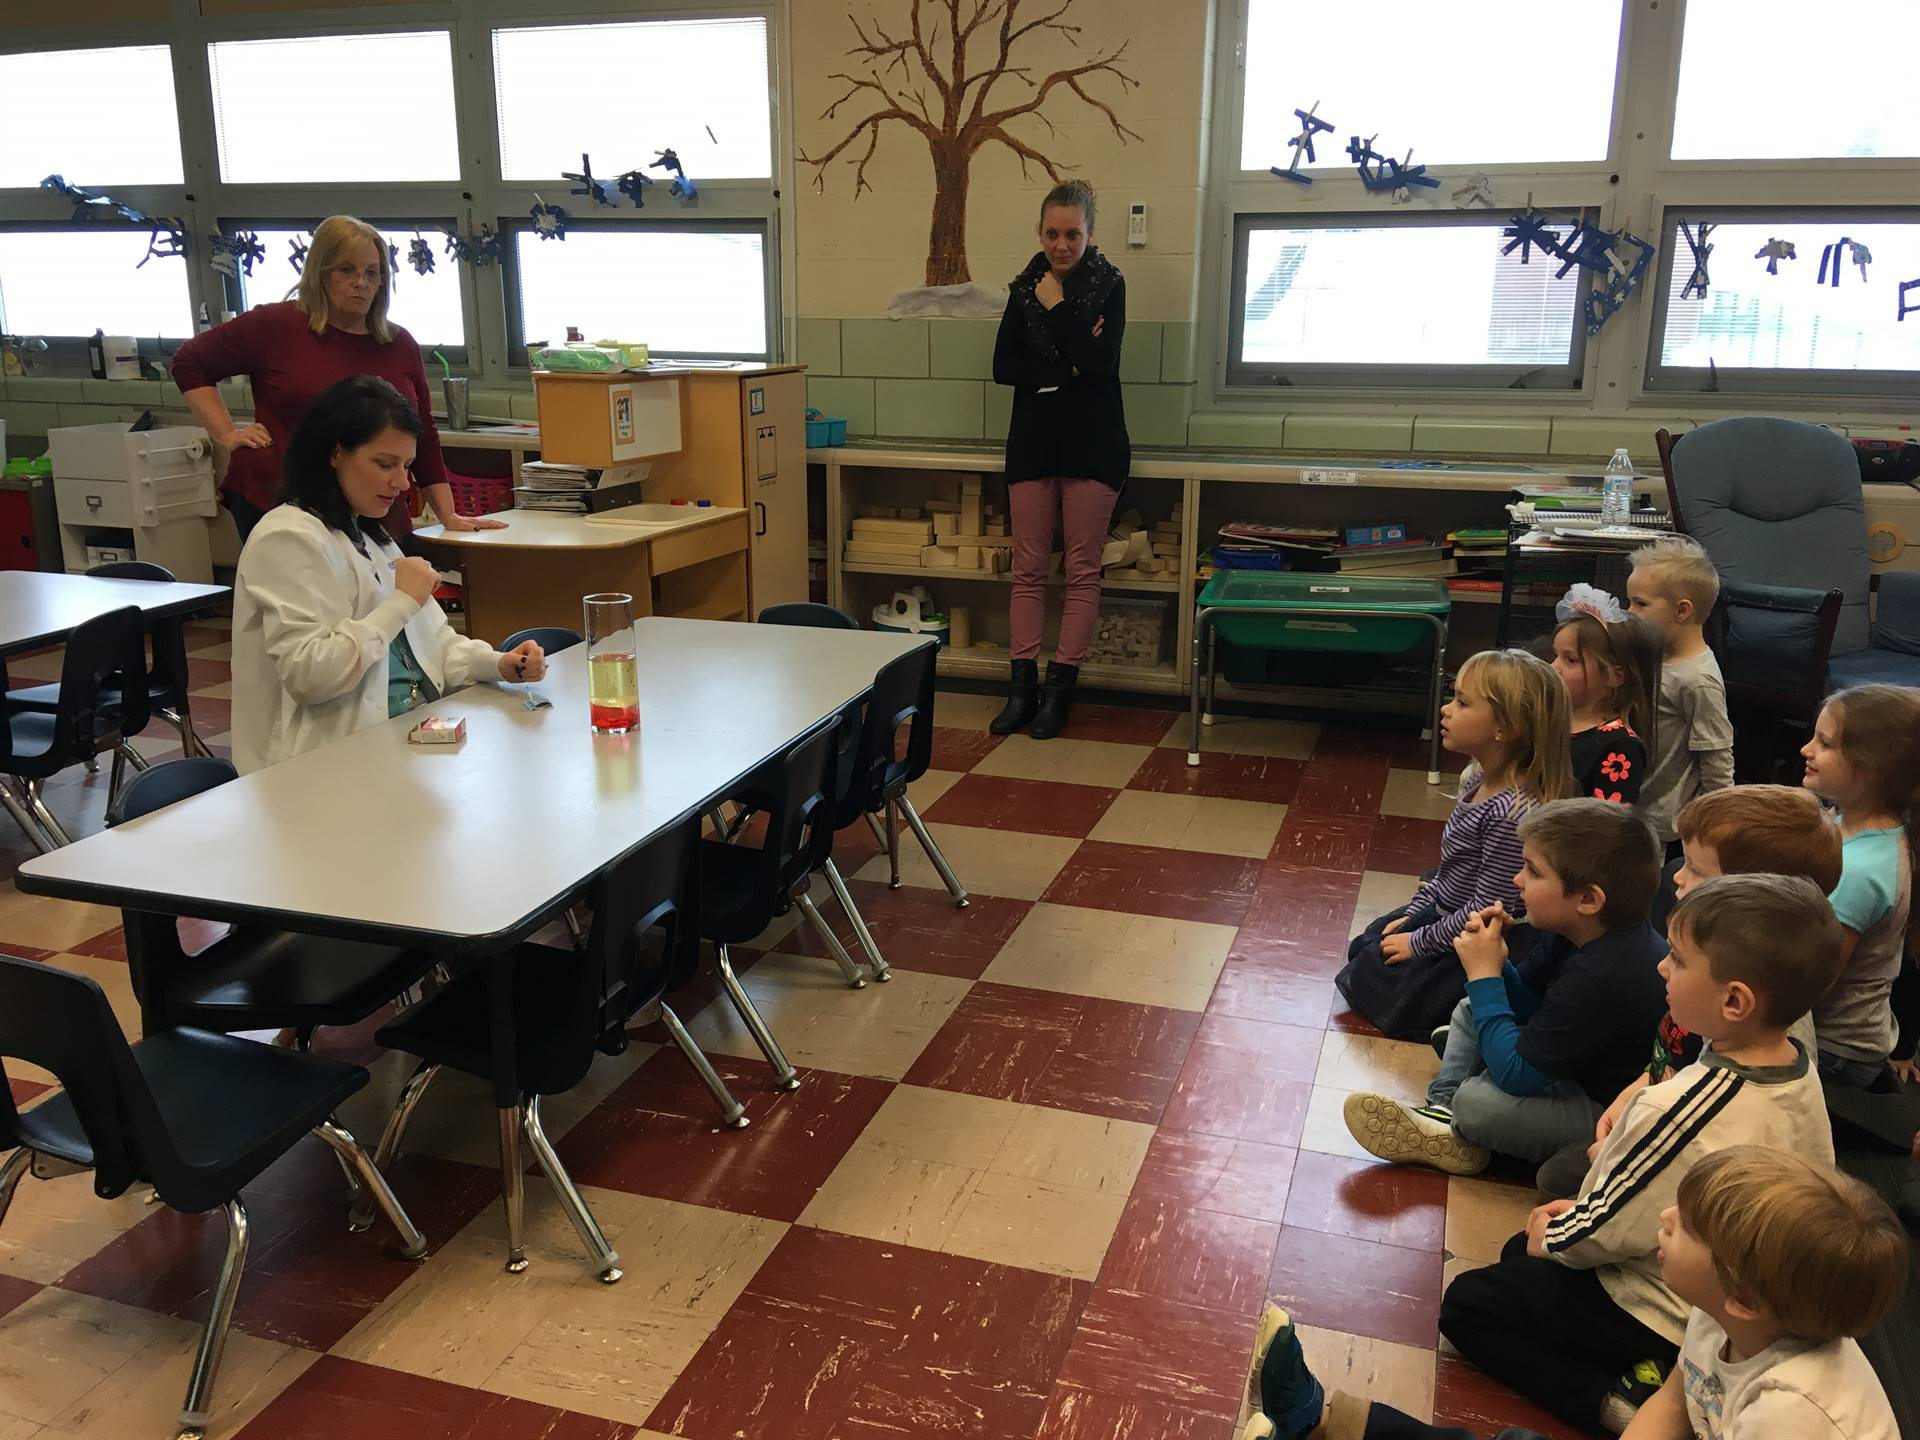 Mrs. Lansing's PreK class is observing their weekly science experiment.